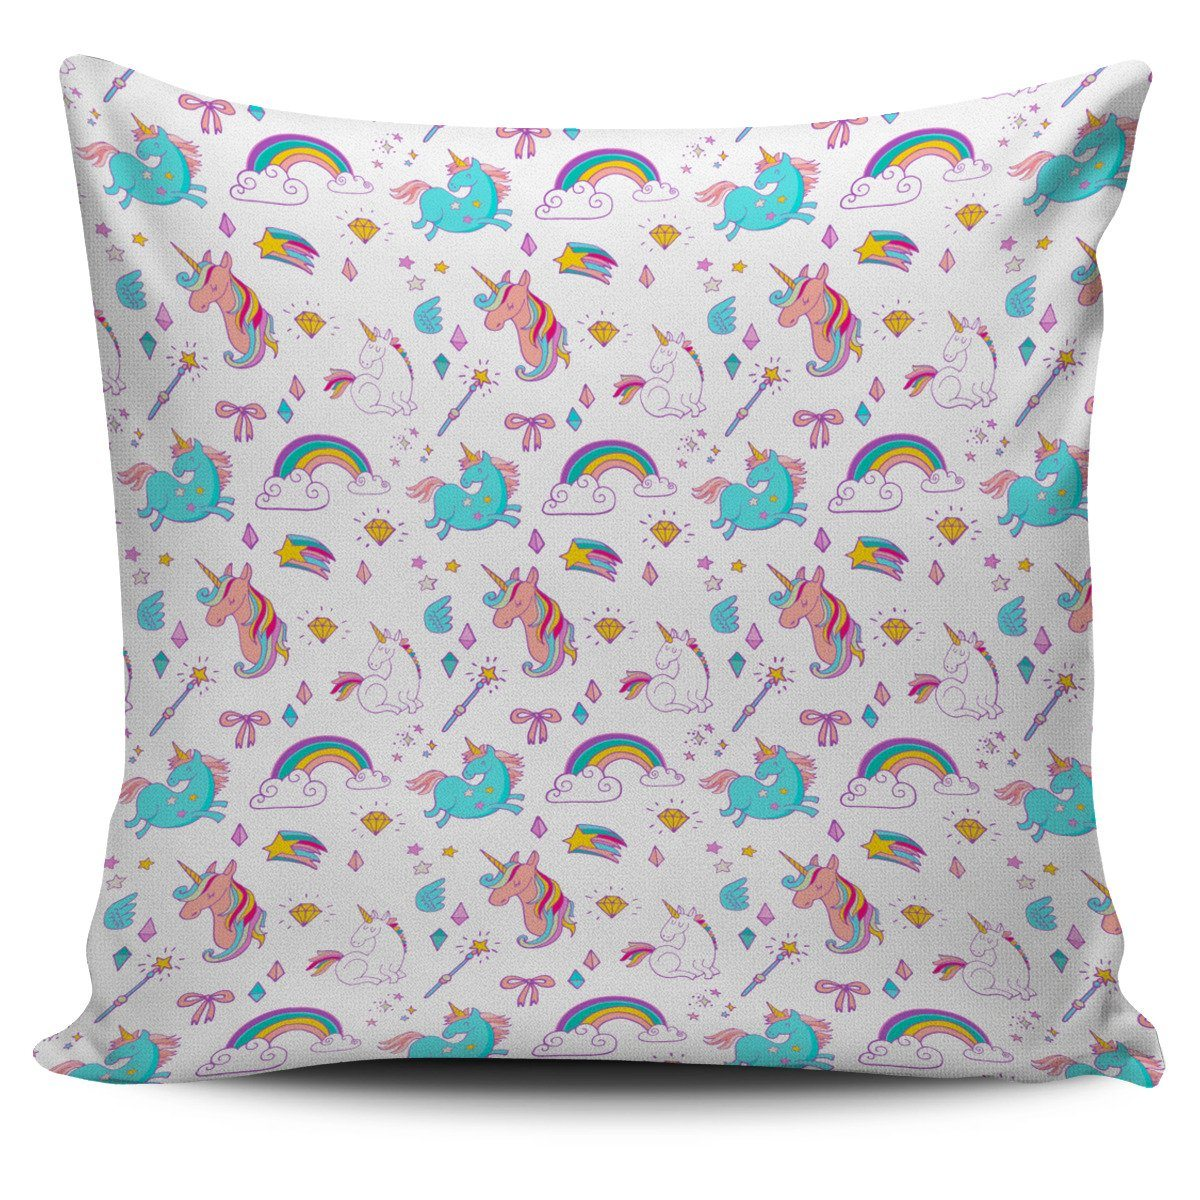 Unicorn Fantasy Pillowcase